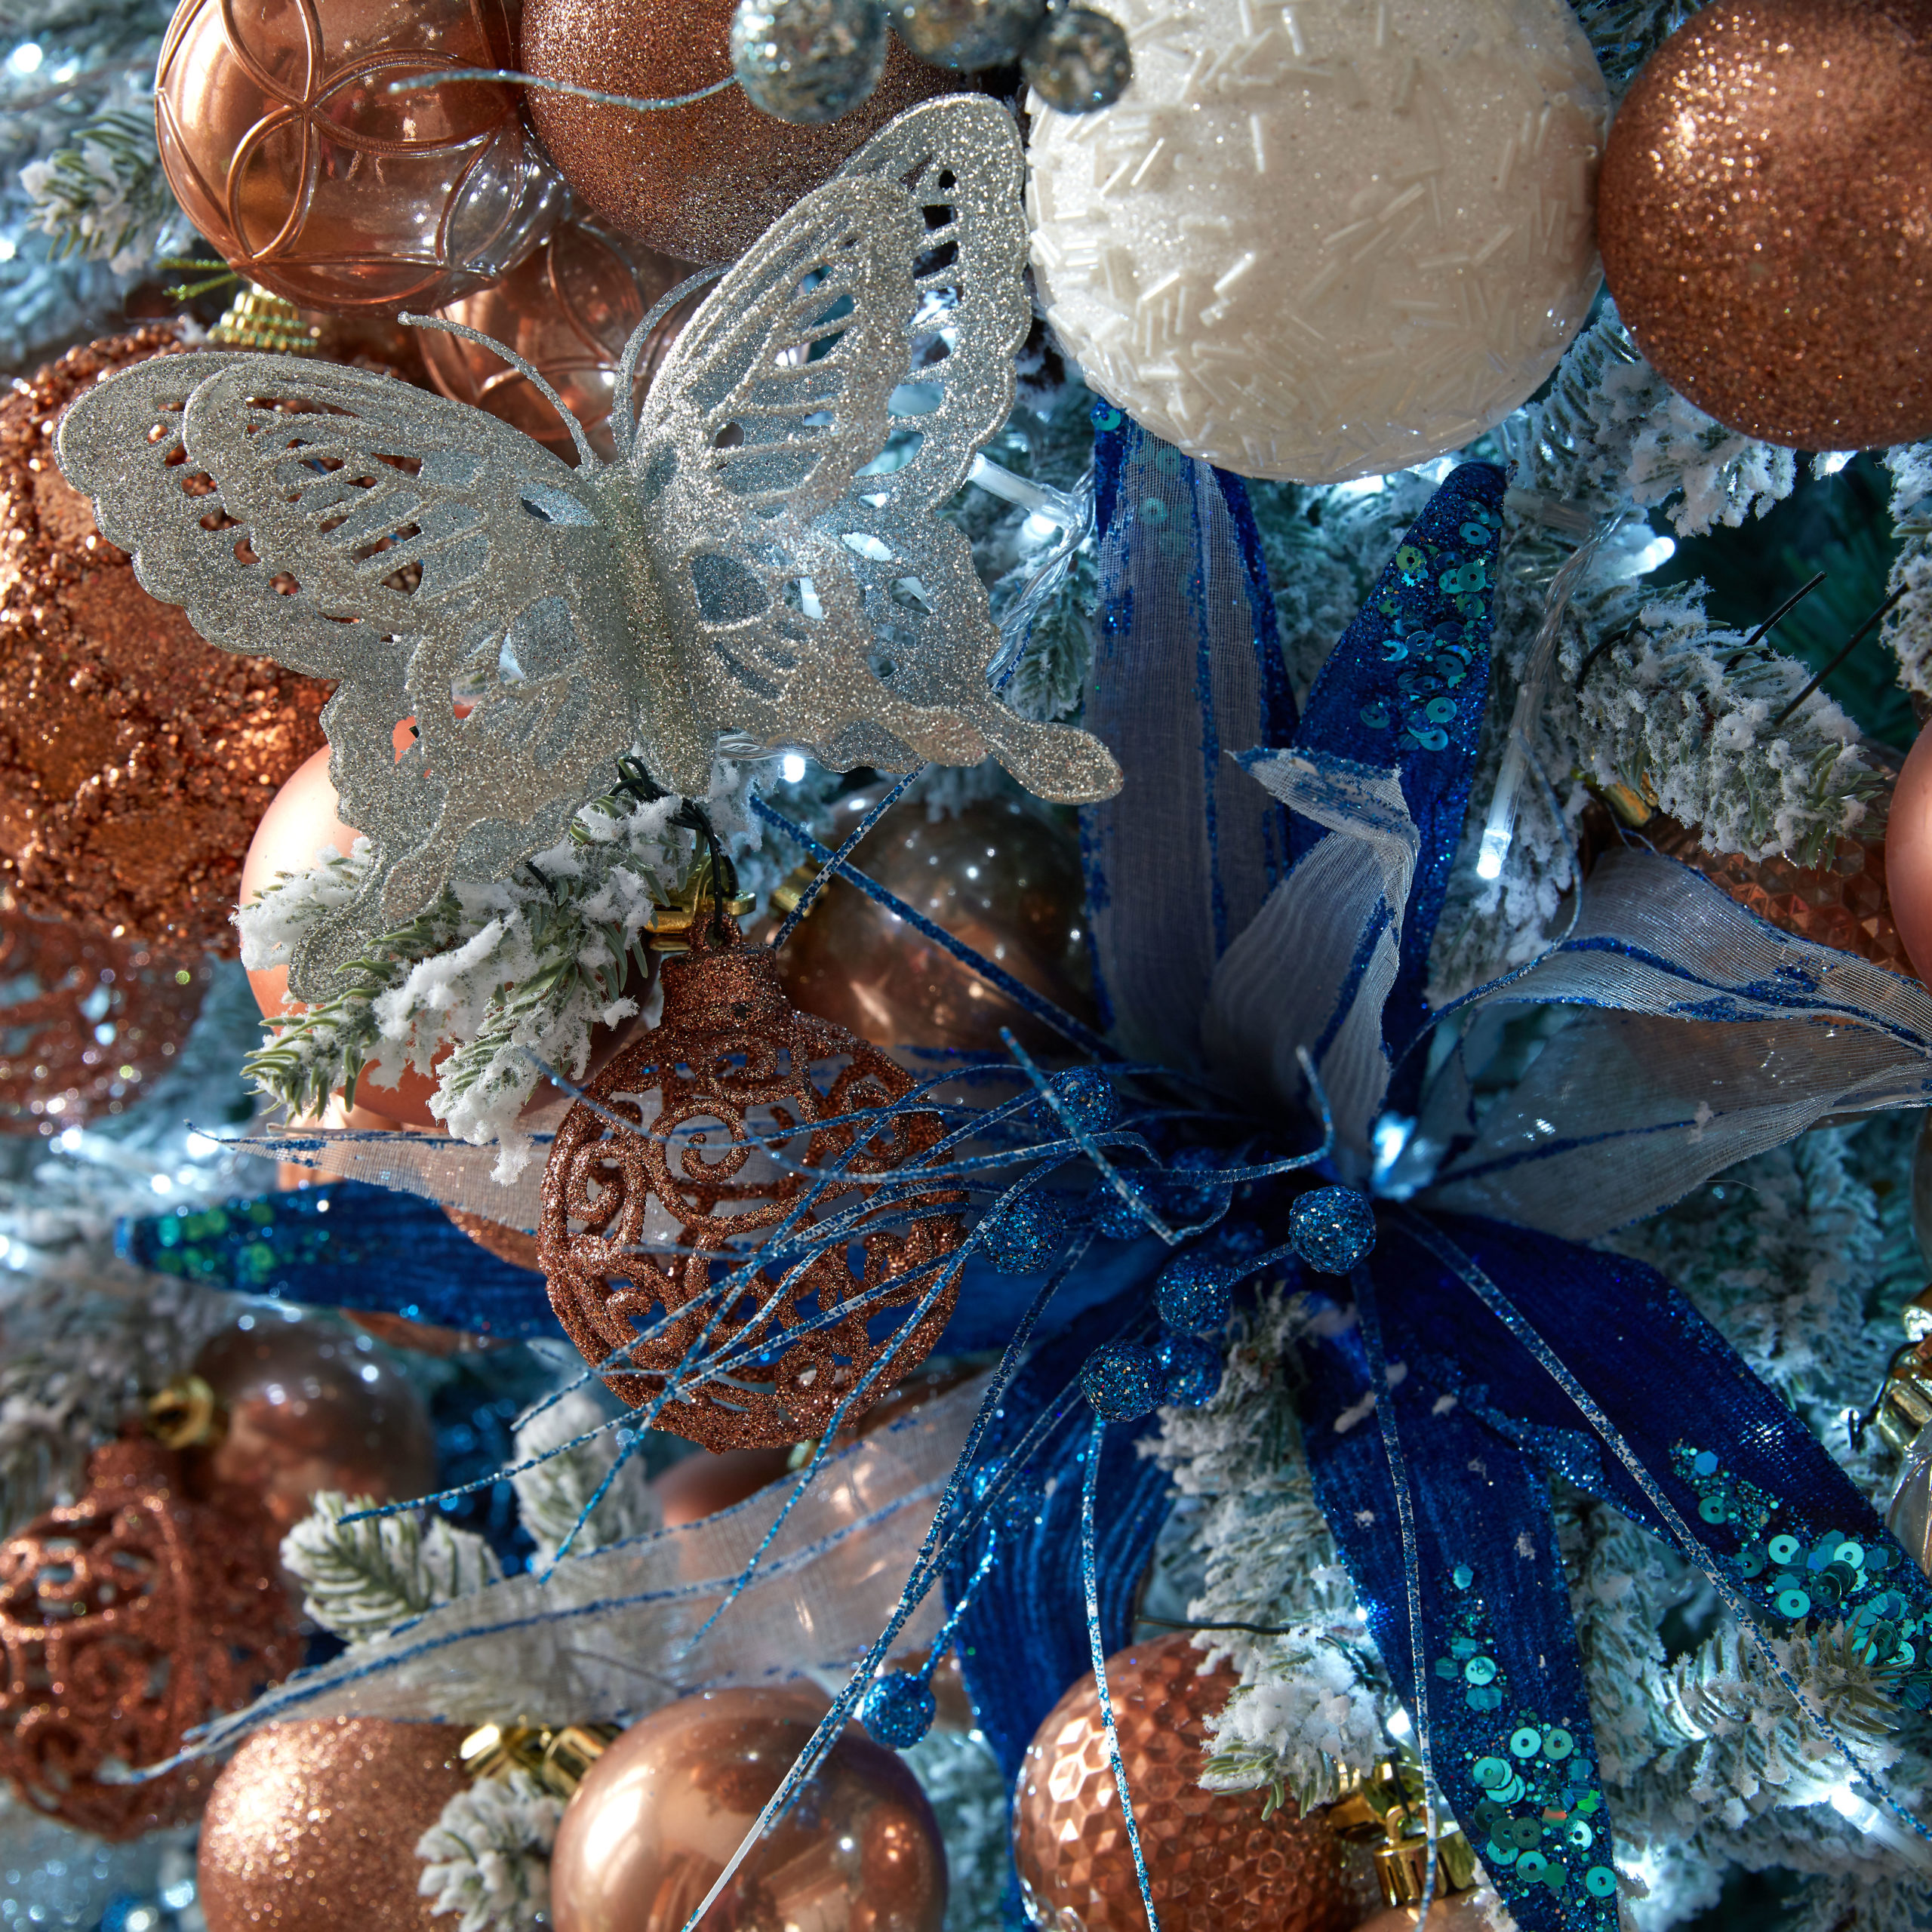 Housing Units- Christmas Decorations and Xmas Baubles